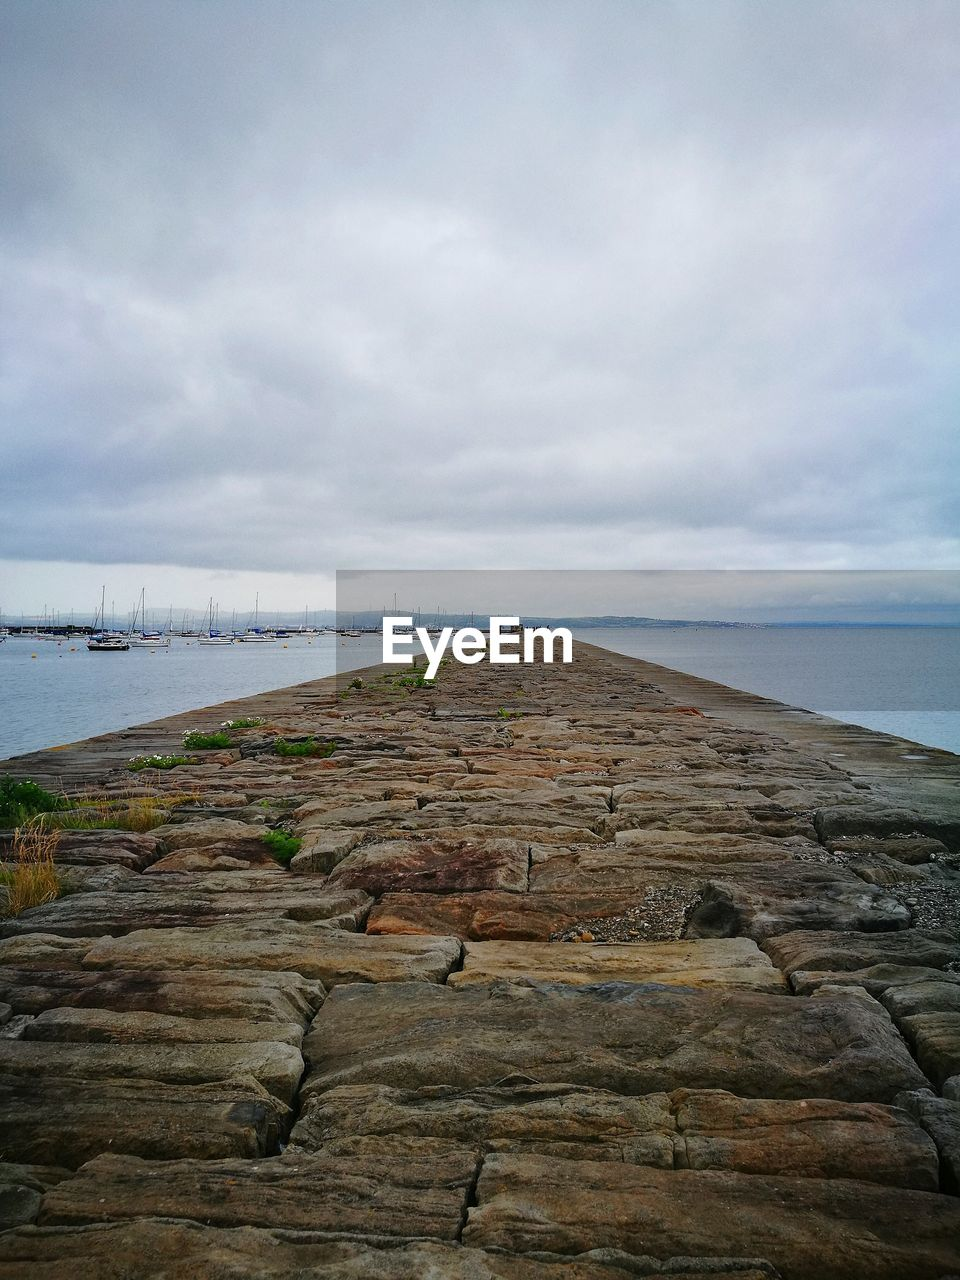 sky, cloud - sky, water, sea, nature, scenics - nature, land, tranquility, tranquil scene, beauty in nature, day, rock, beach, solid, rock - object, horizon, no people, horizon over water, non-urban scene, outdoors, groyne